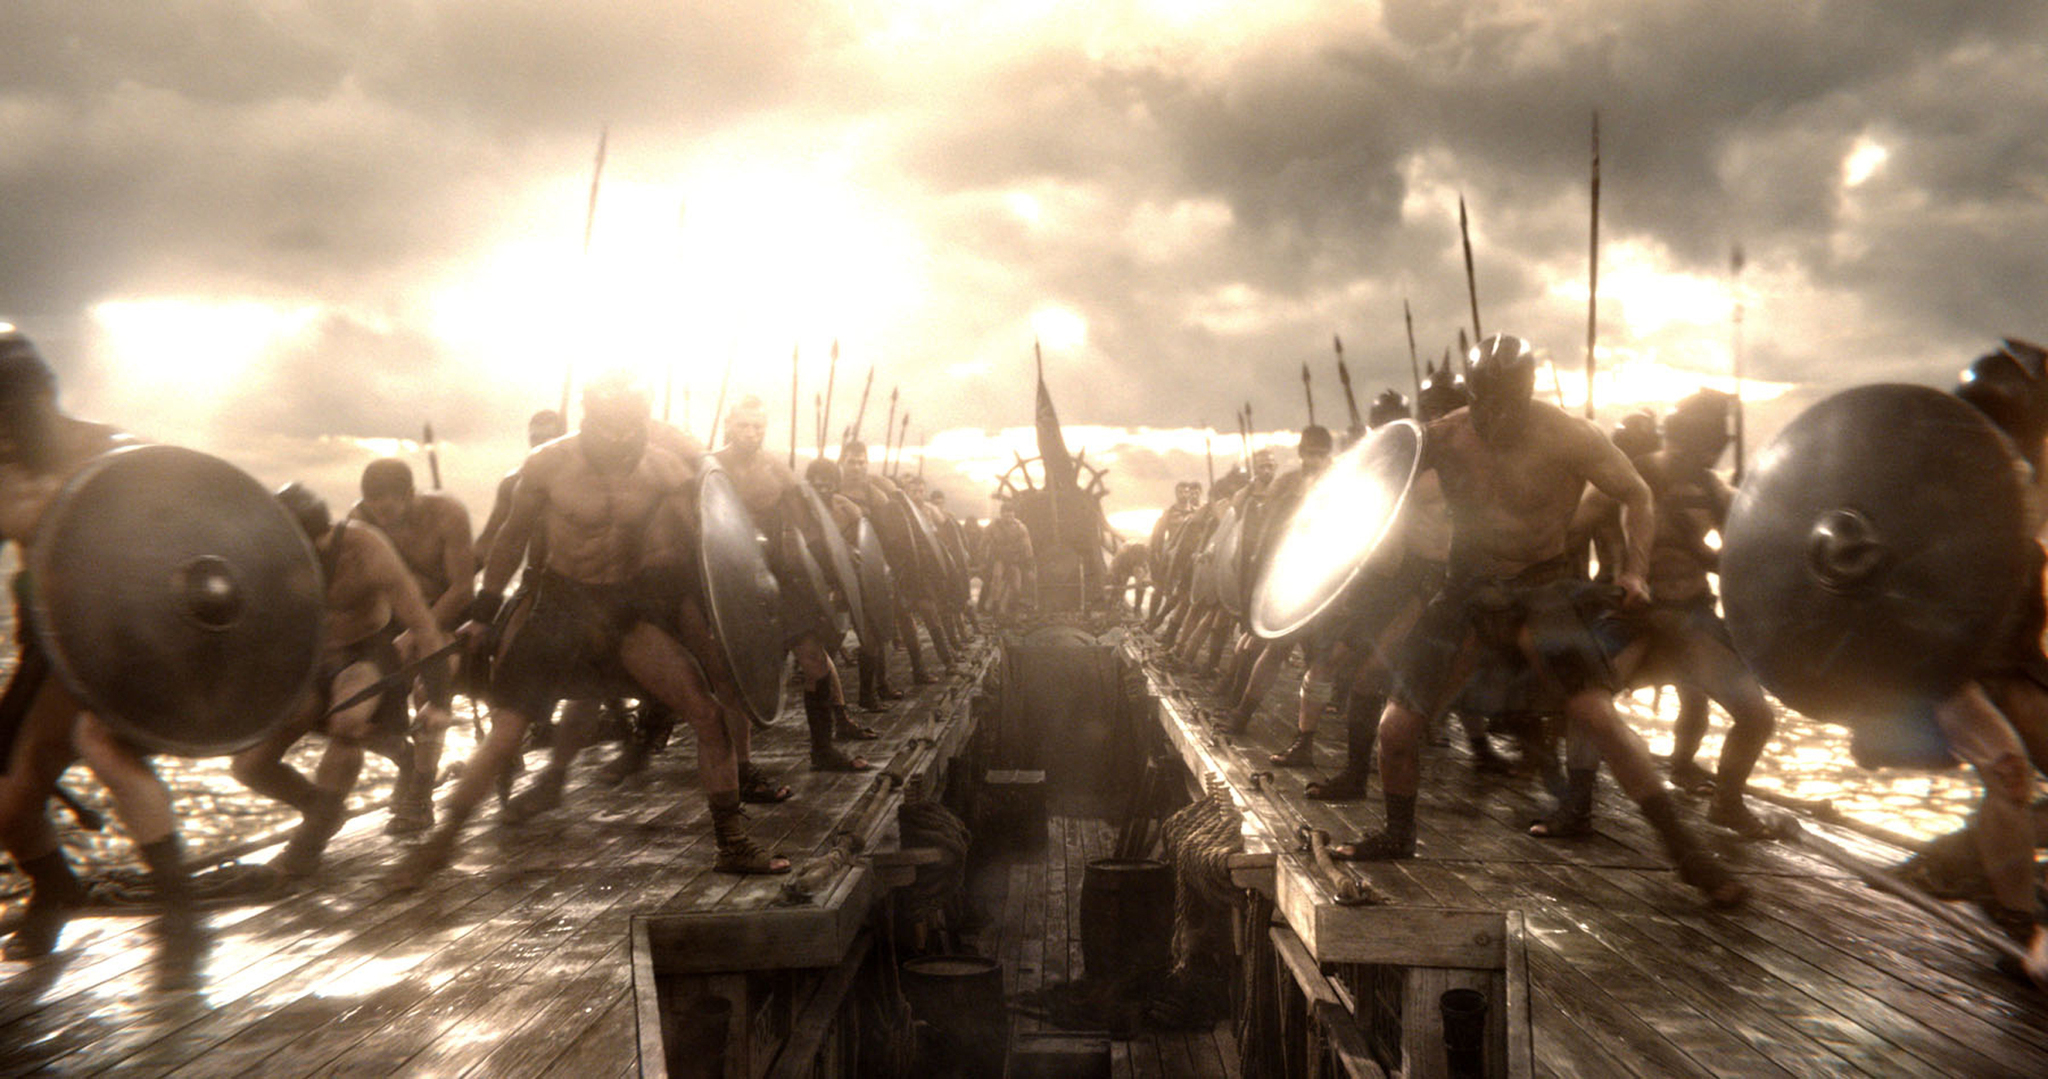 300: Rise of an Empire - First Look Images